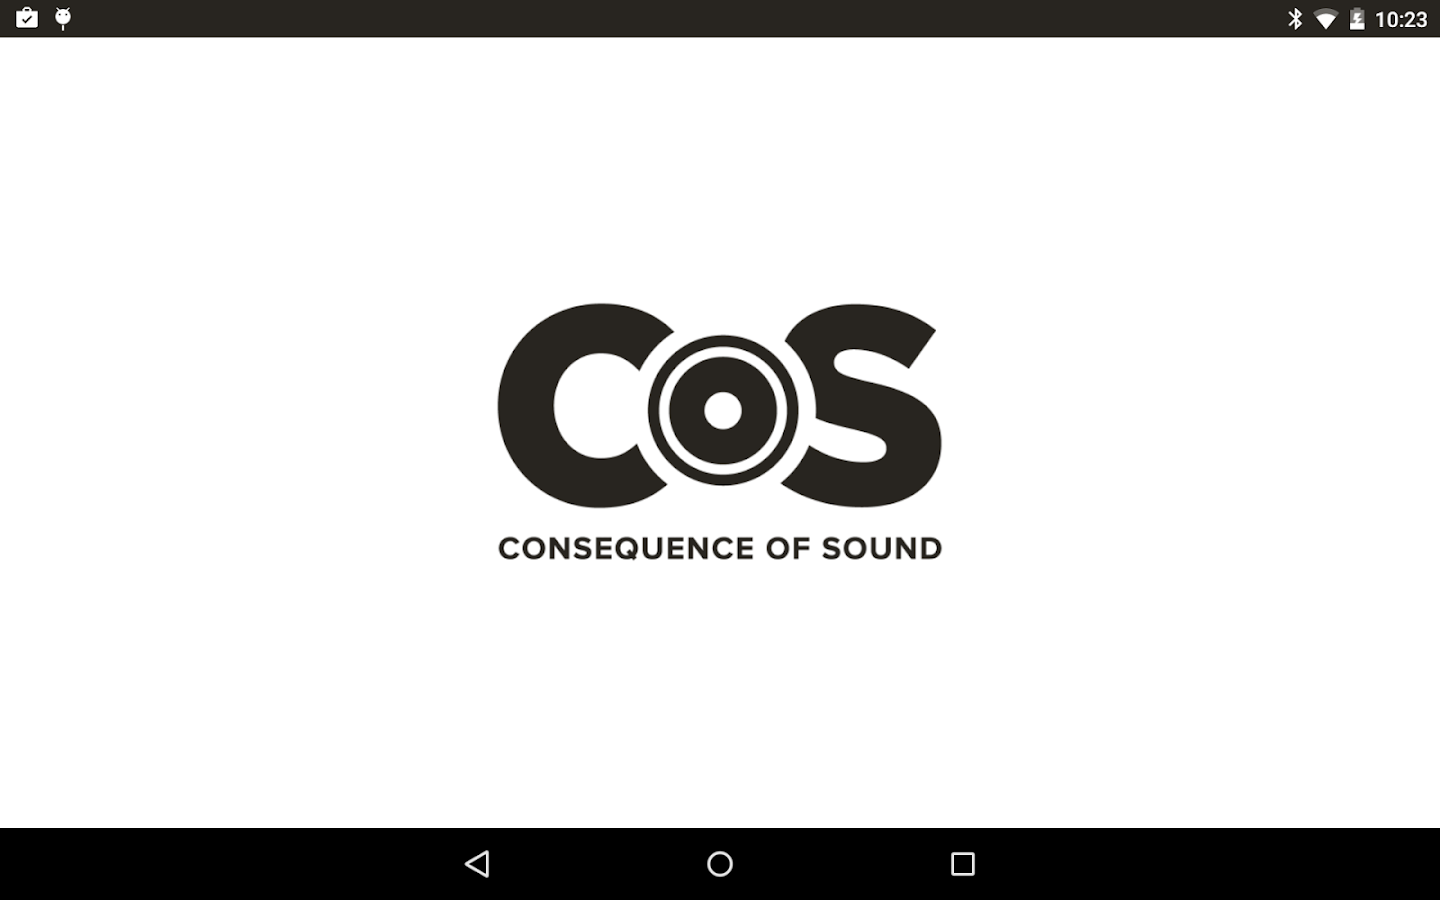 Consequence of Sound: Official- screenshot